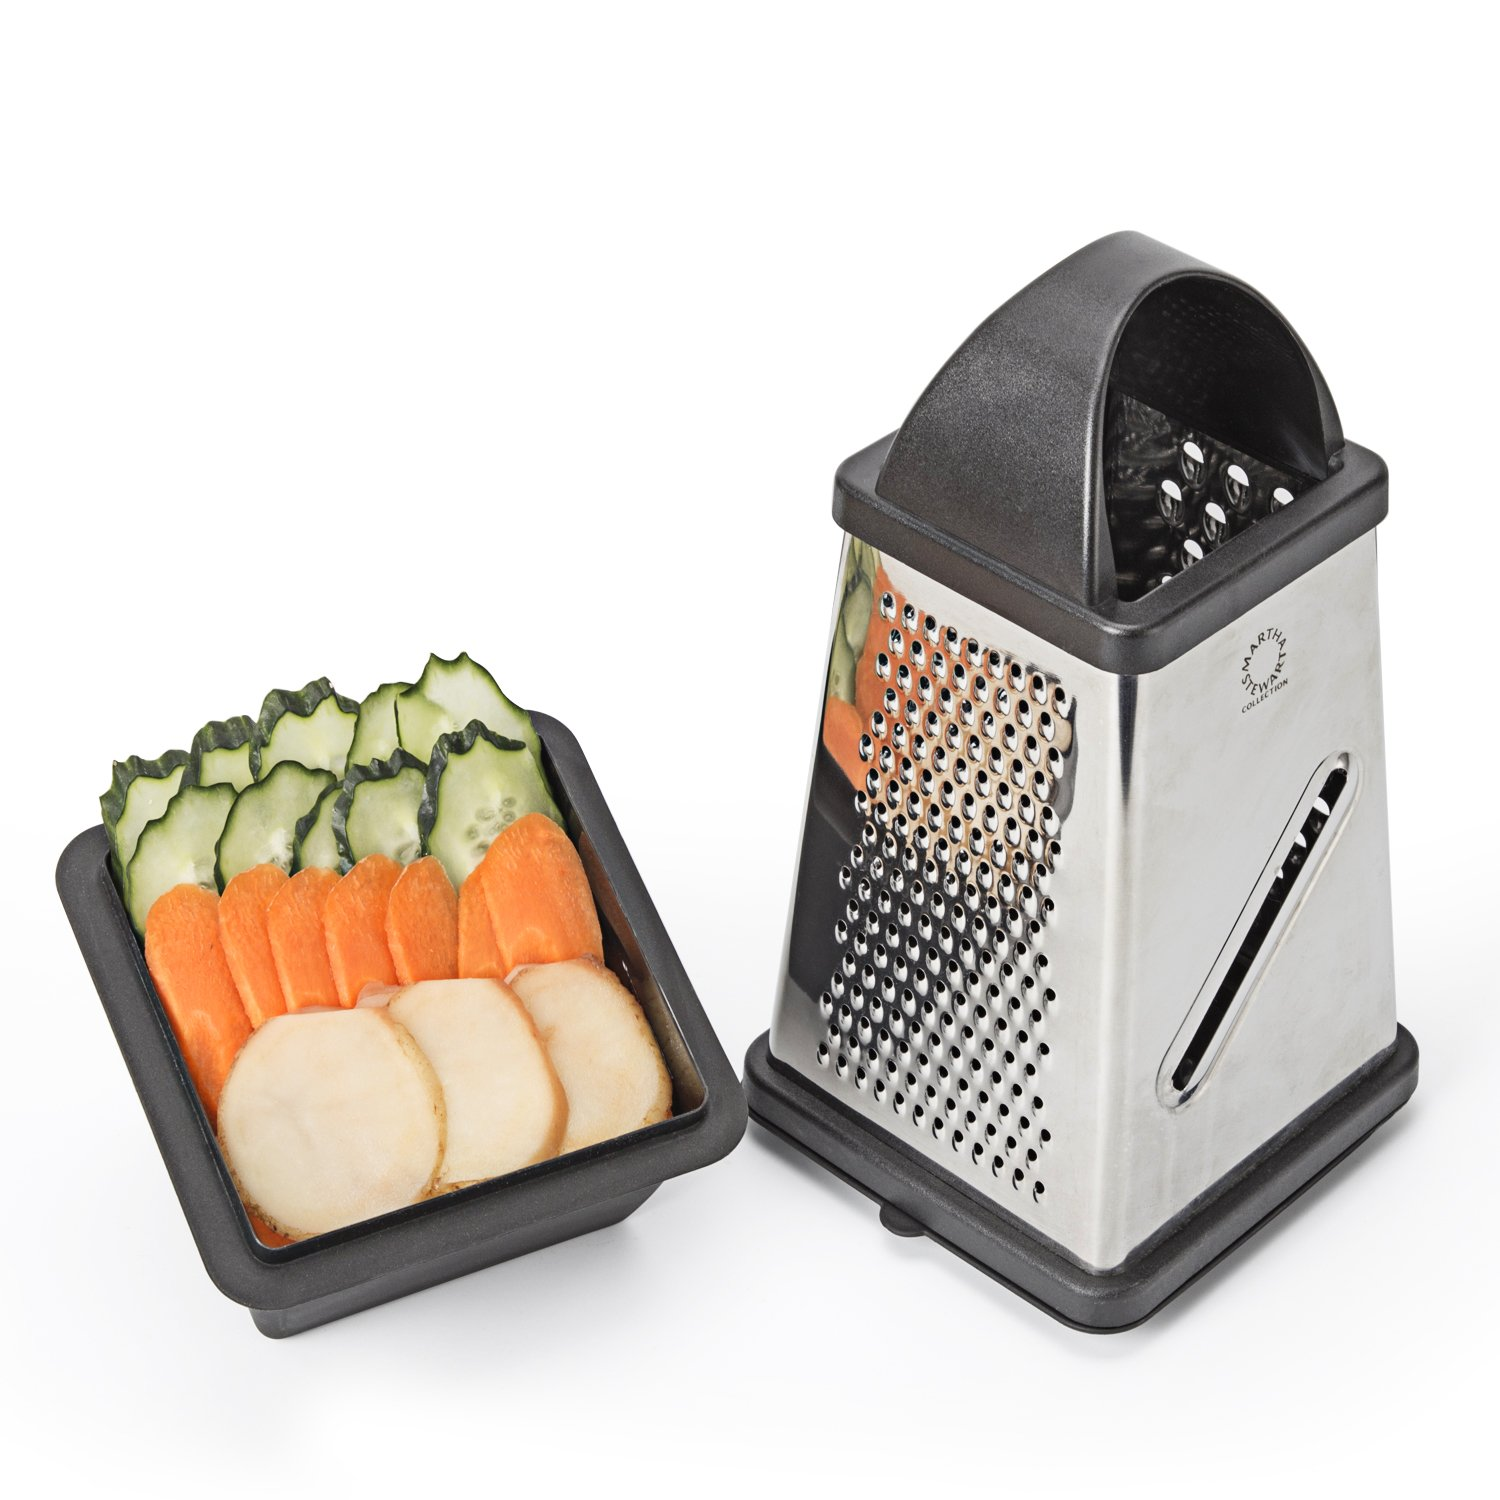 Yehua Kitchen Cheese Box Grater - Vegetable Slicer - 4 Sided Stainless Steel Multi-Purpose Cheese and Veggie Cutter with Collection Box and Lid